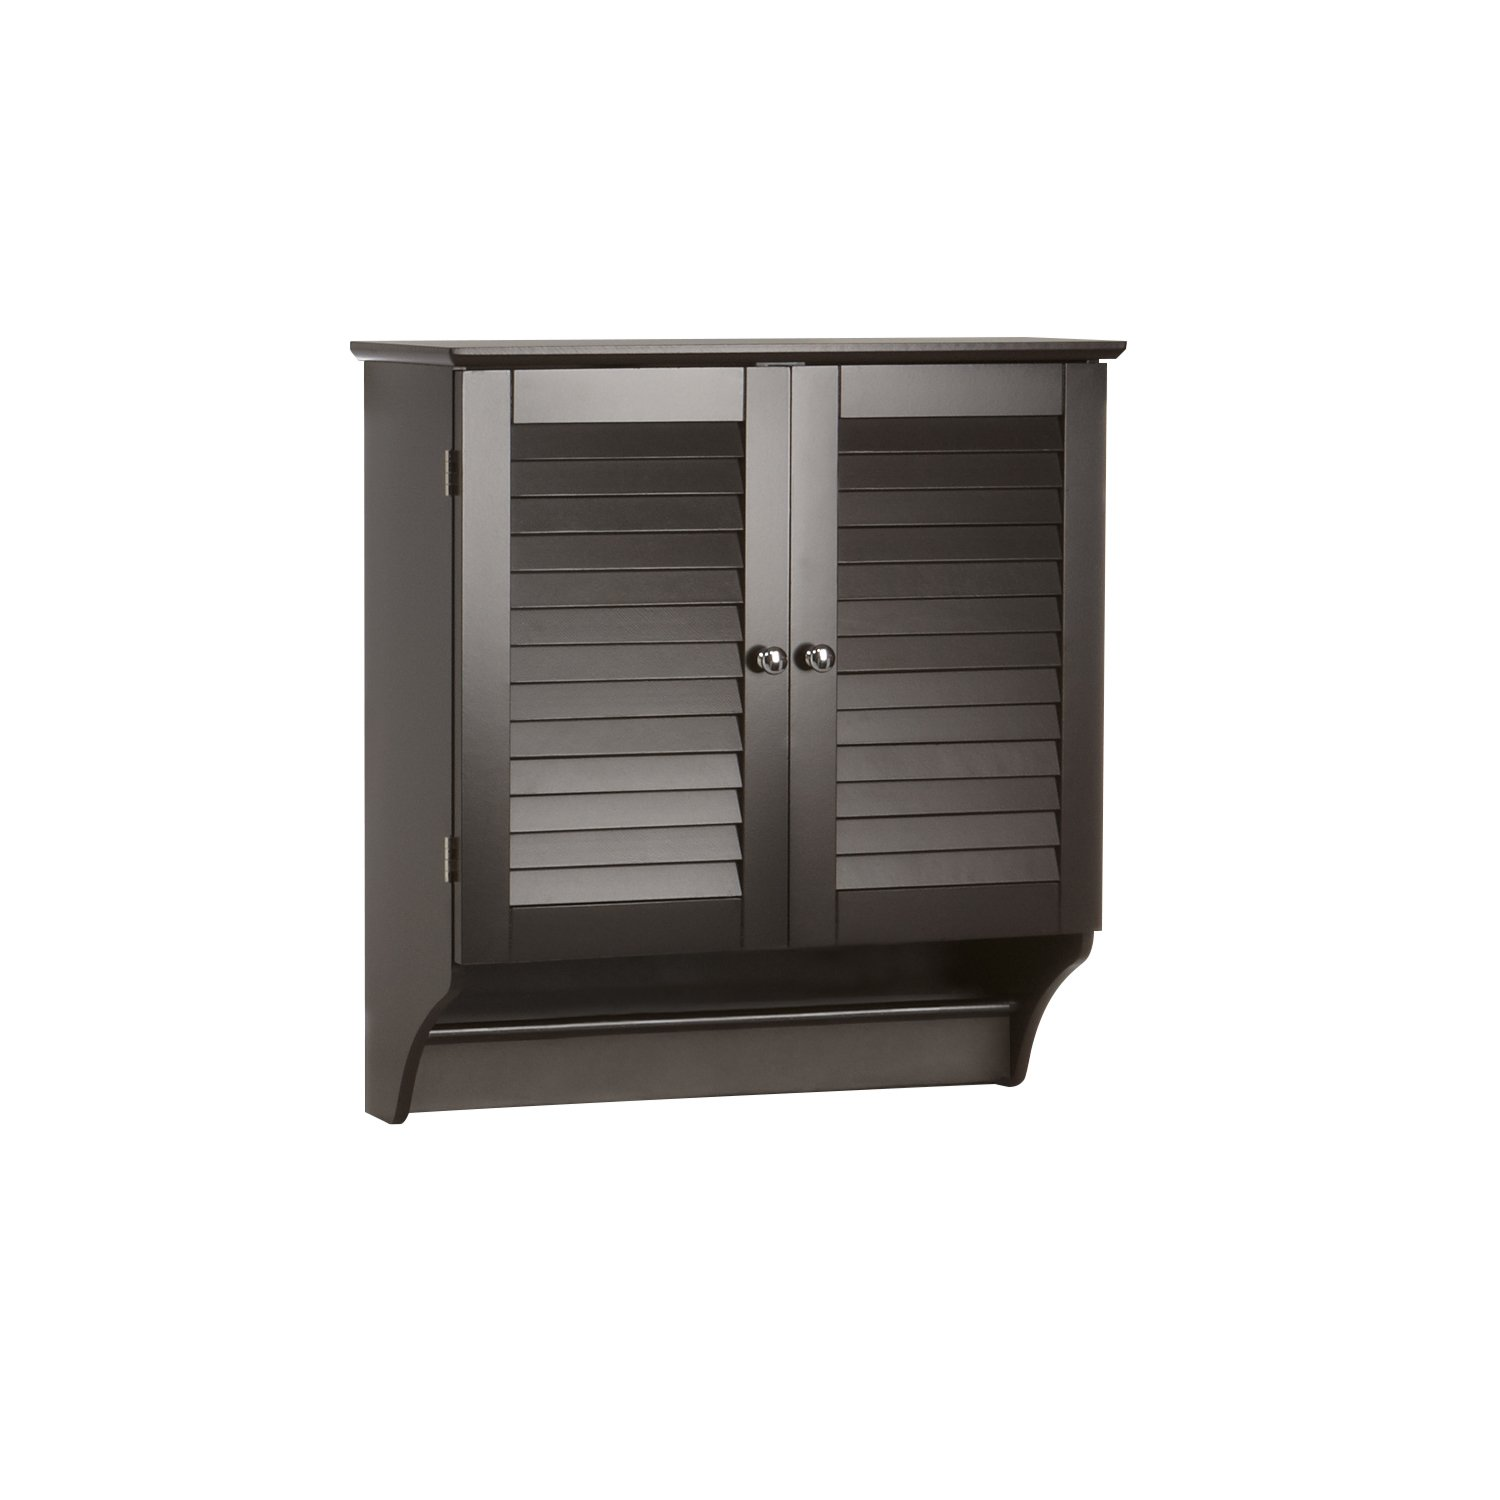 Amazon.com: RiverRidge Home Ellsworth Collection 2-Door Wall ...